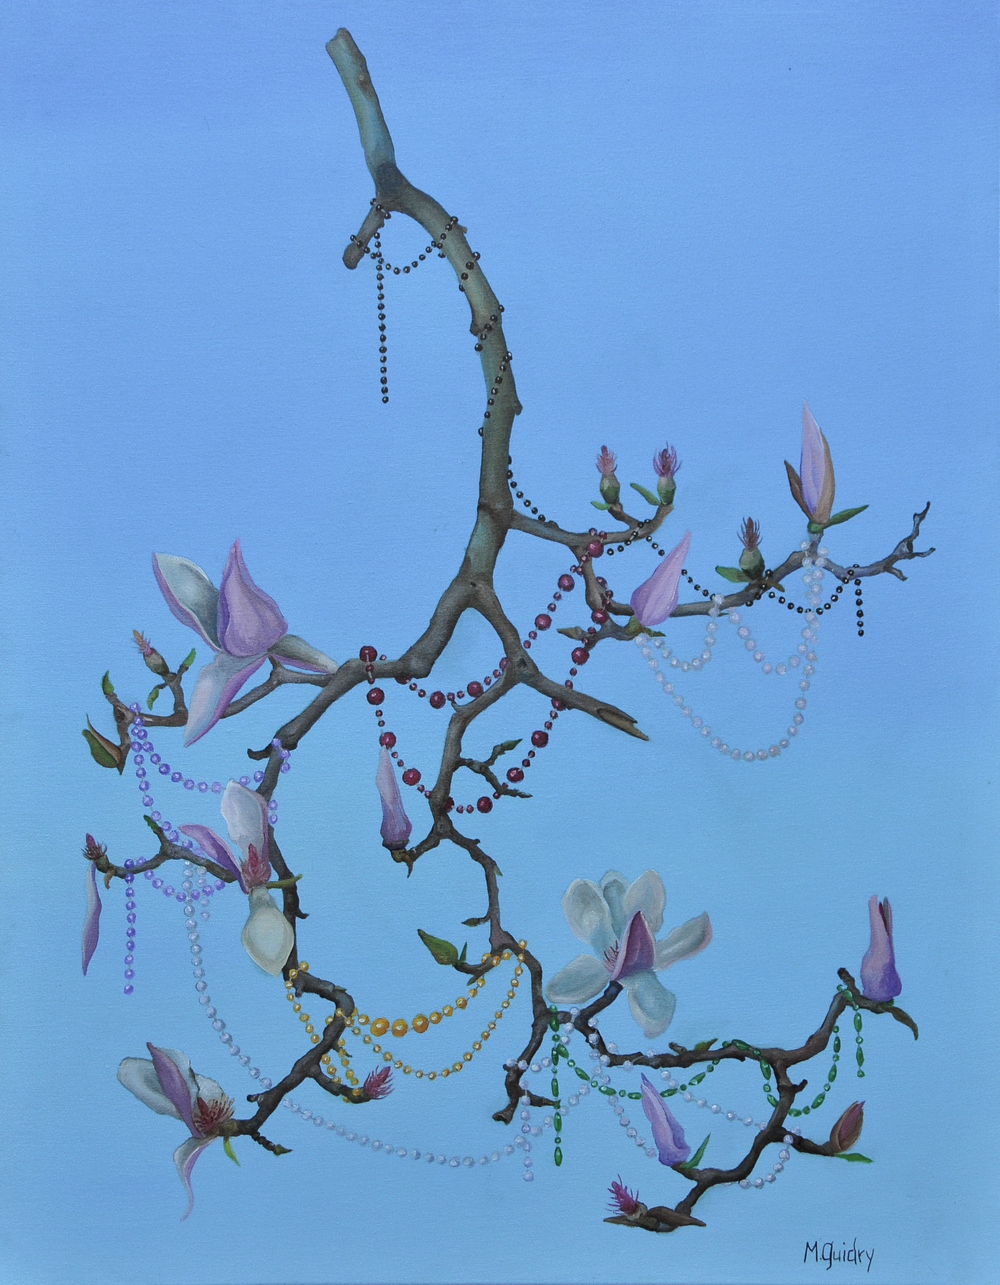 beaded_magnolia_mardi_gras_japanese_tulip_louisiana_m.guidry_michael_guidry_oil_painting_marsh_new_orleans_artist.jpg.jpg